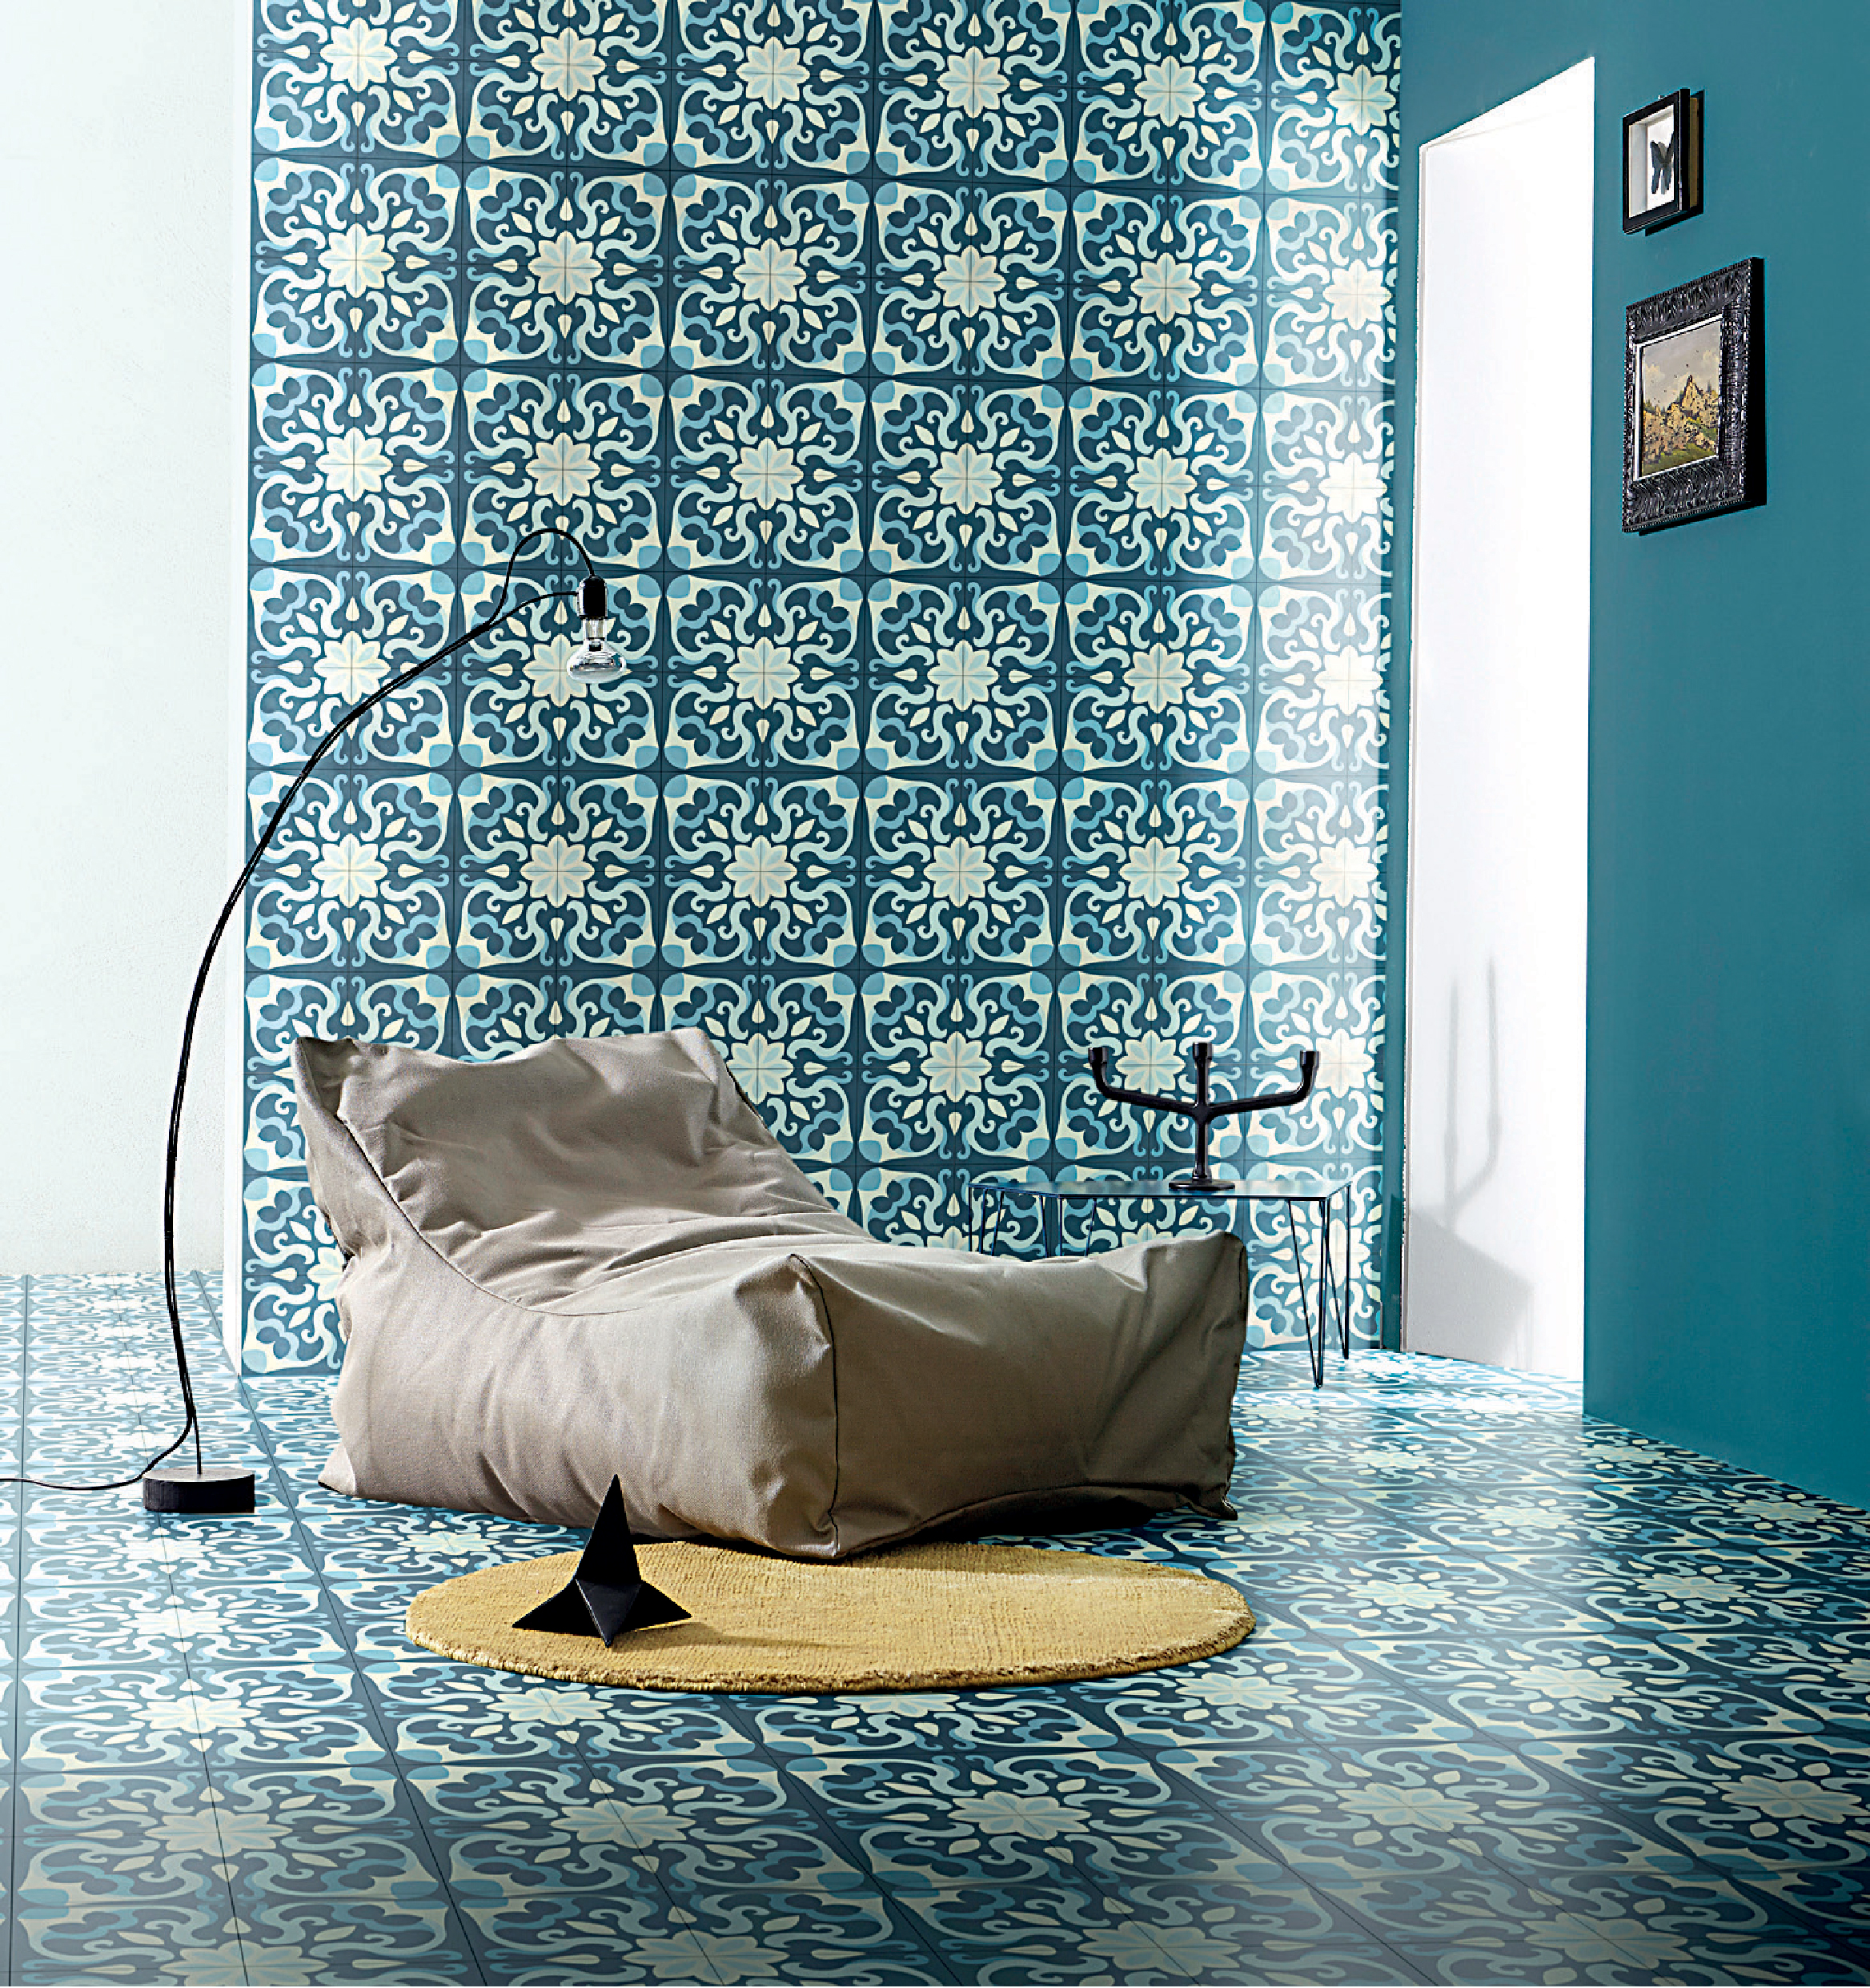 Bisazza Cement Tiles